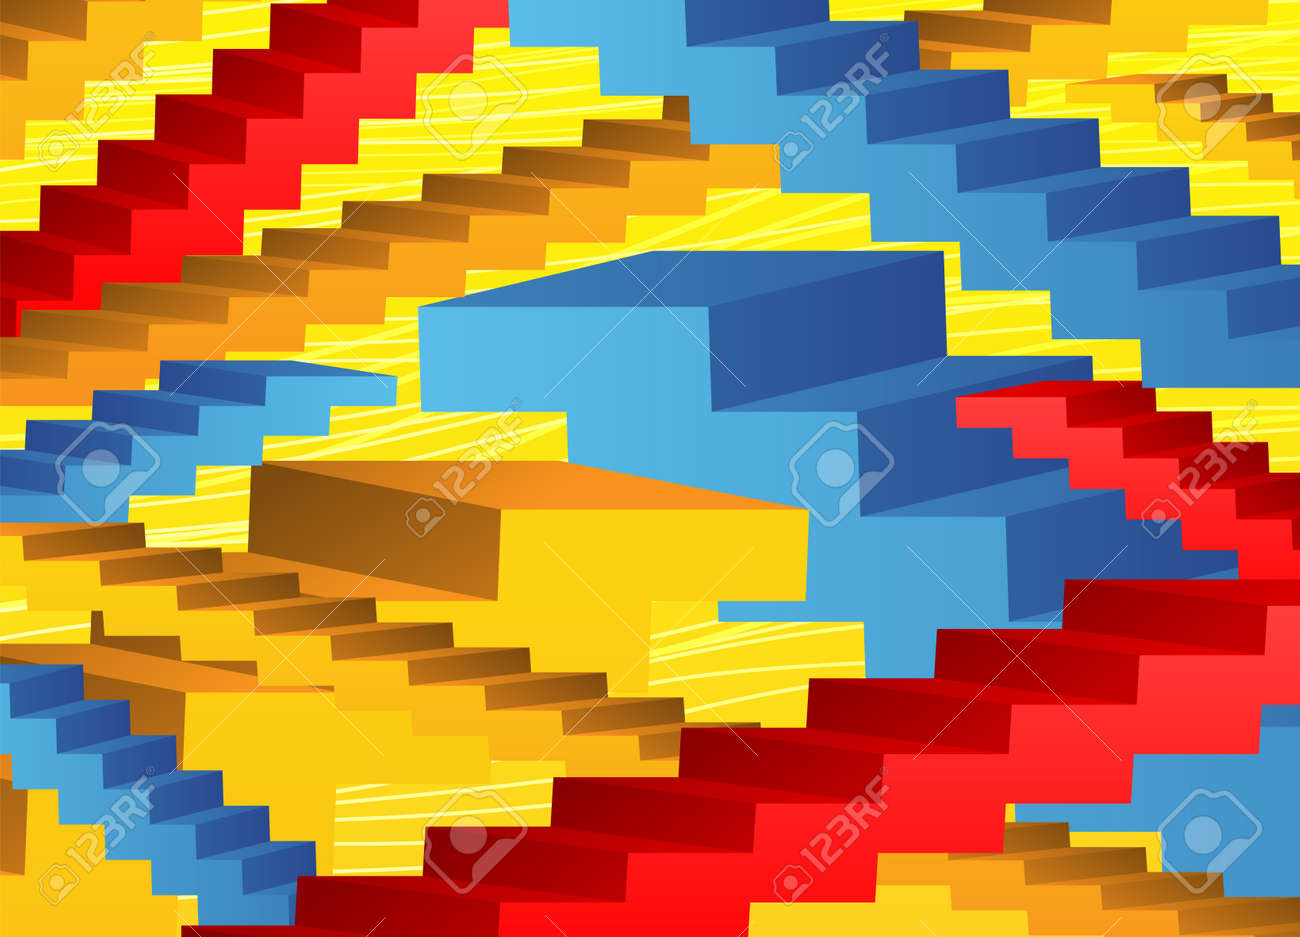 Abstract background with colored stairs on a yellow background. - 168969192